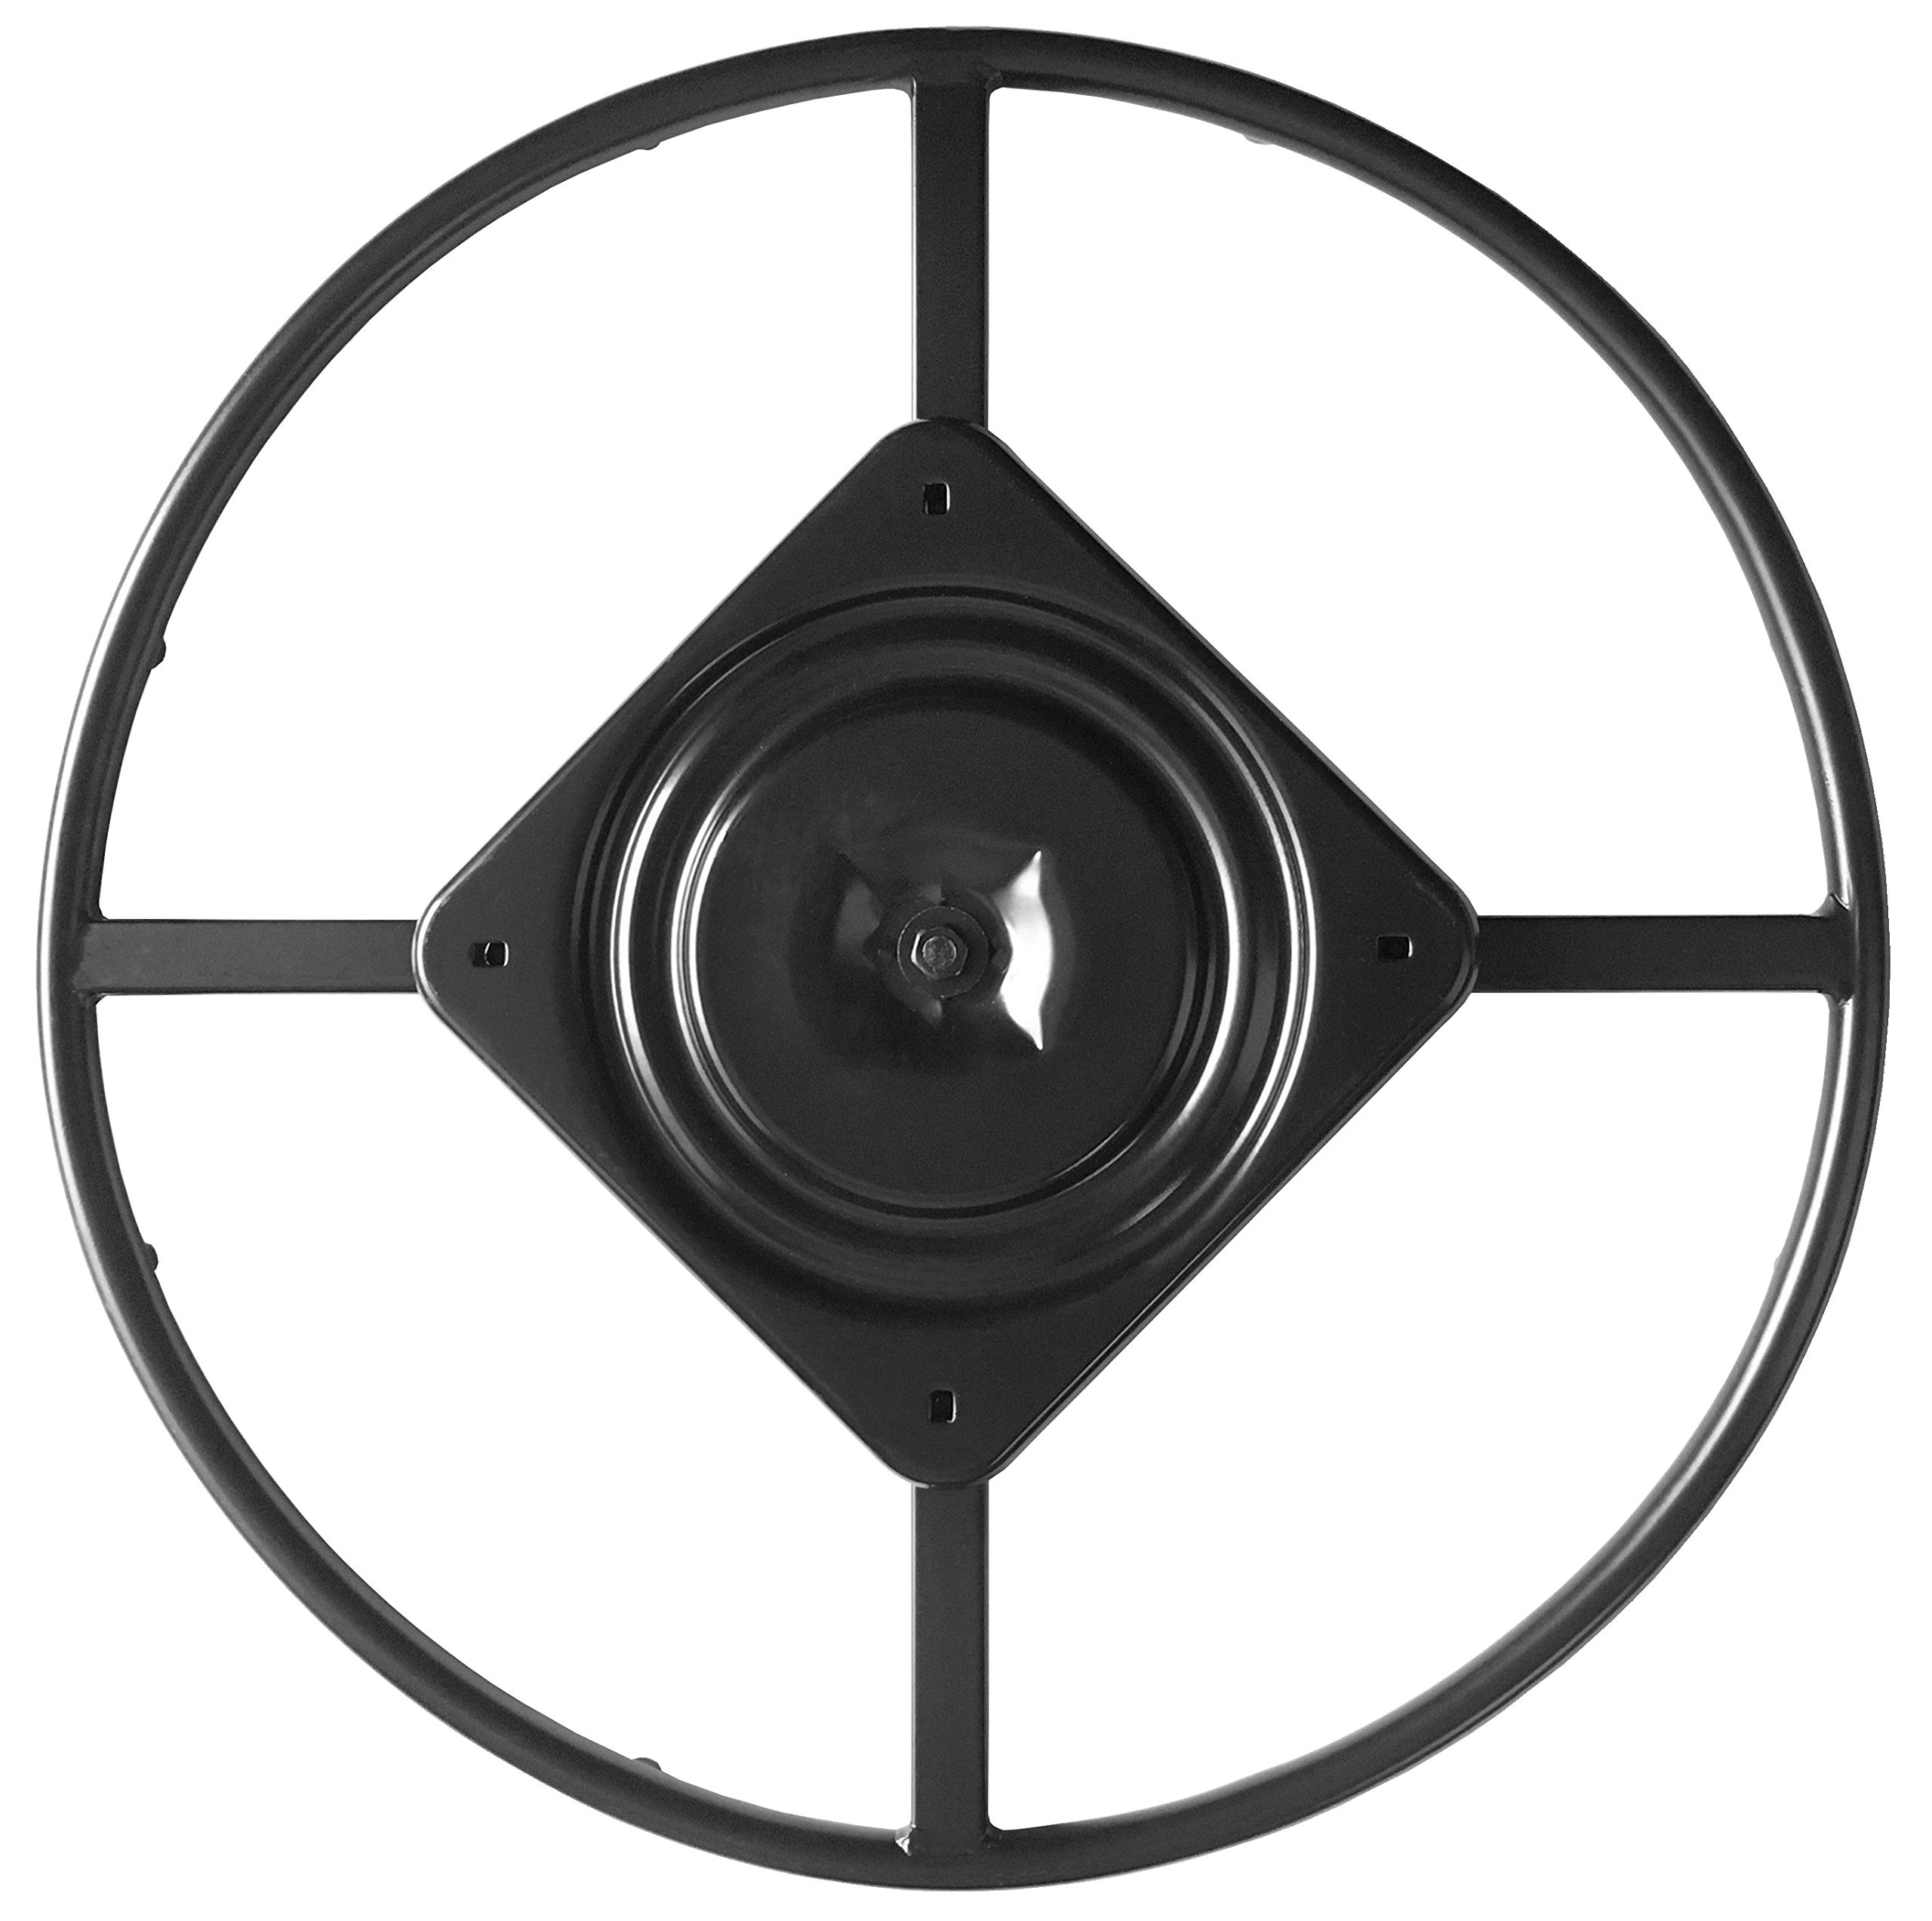 chairpartsonline 24'' Replacement Ring Base w/Swivel for Recliner Chairs & Furniture, Includes Swivel - S5454-A by chairpartsonline